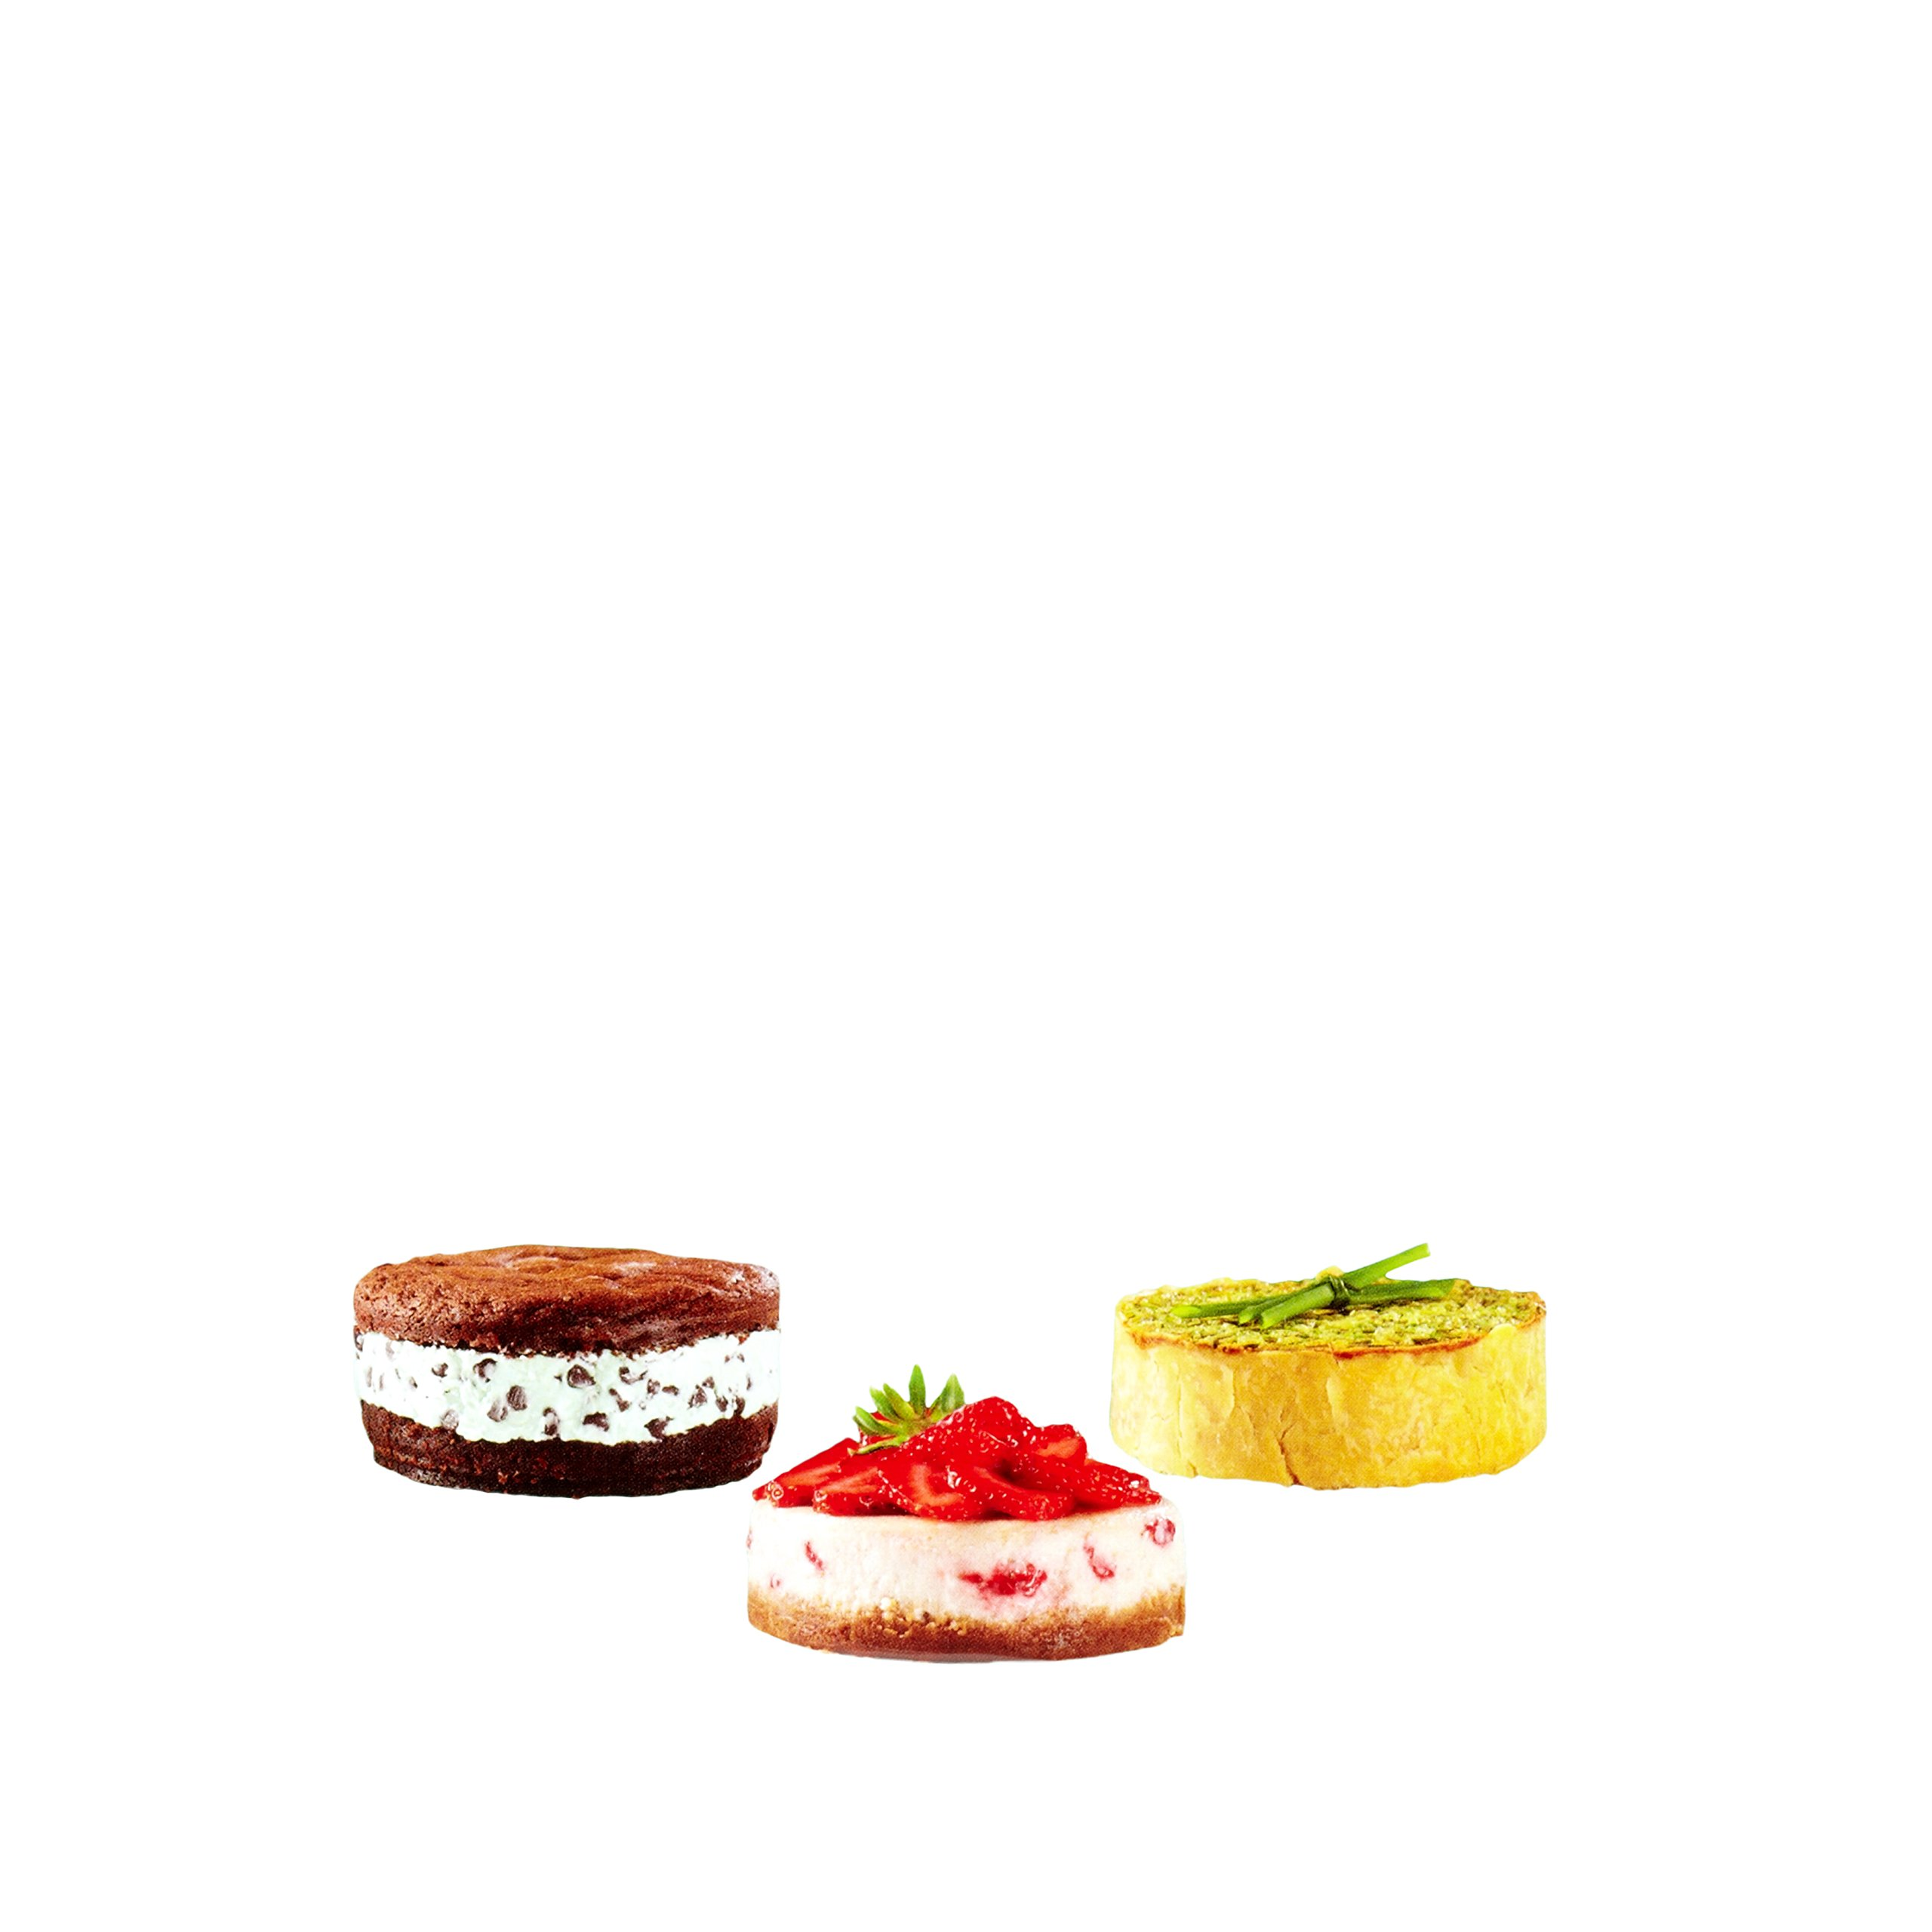 Wilton 4-Inch Mini Springform Pans Set, 3-Piece for Mini Cheesecakes, Pizzas and Quiches by Wilton (Image #7)